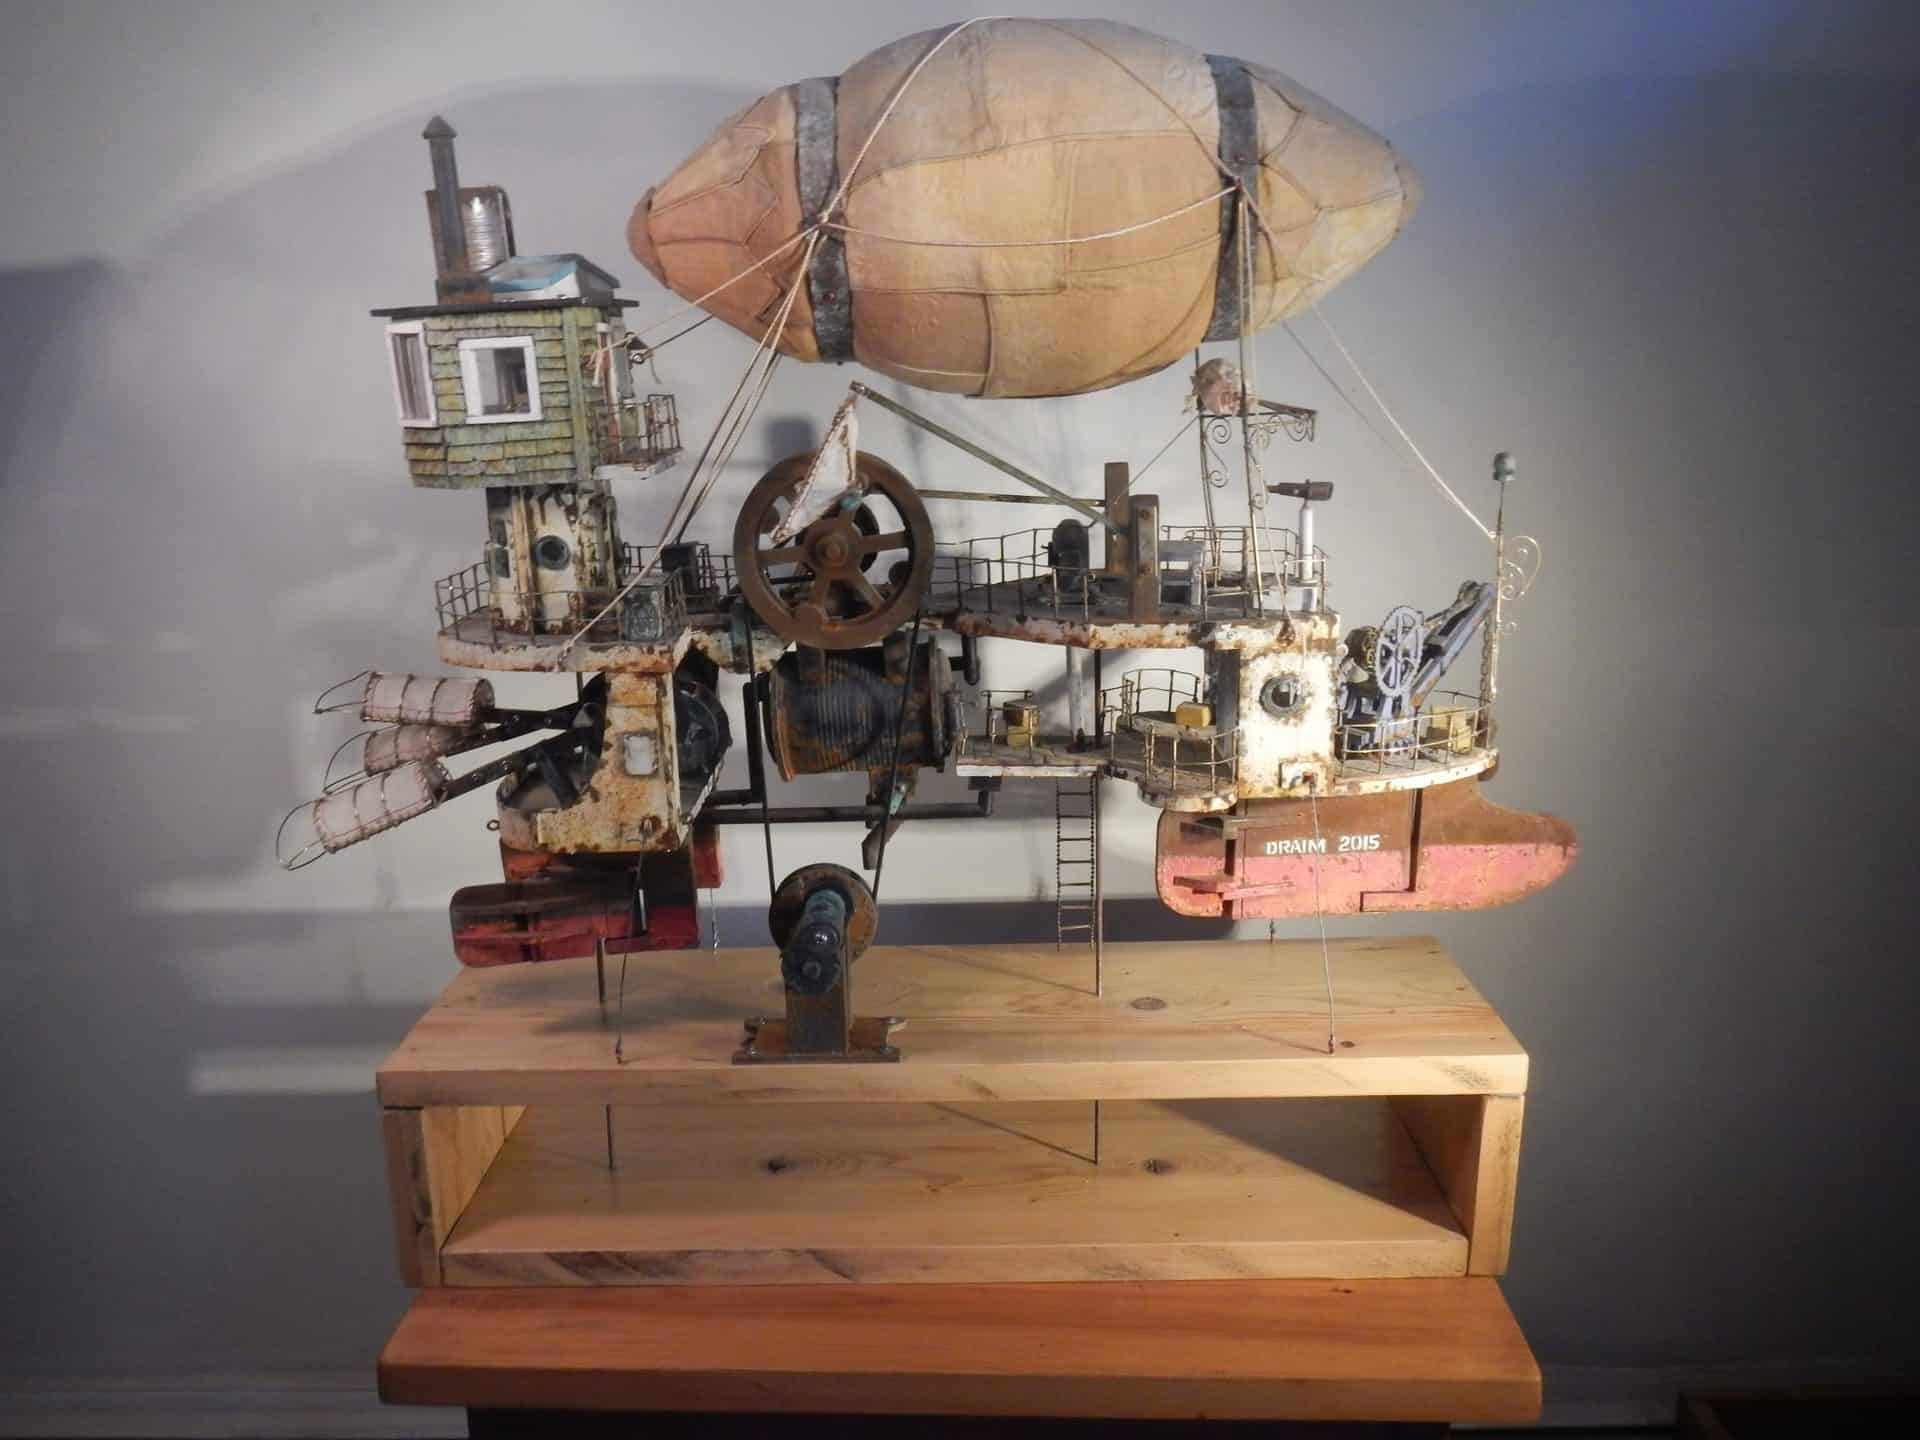 Steampunk Ken Draim - The Flying Machine, 2015